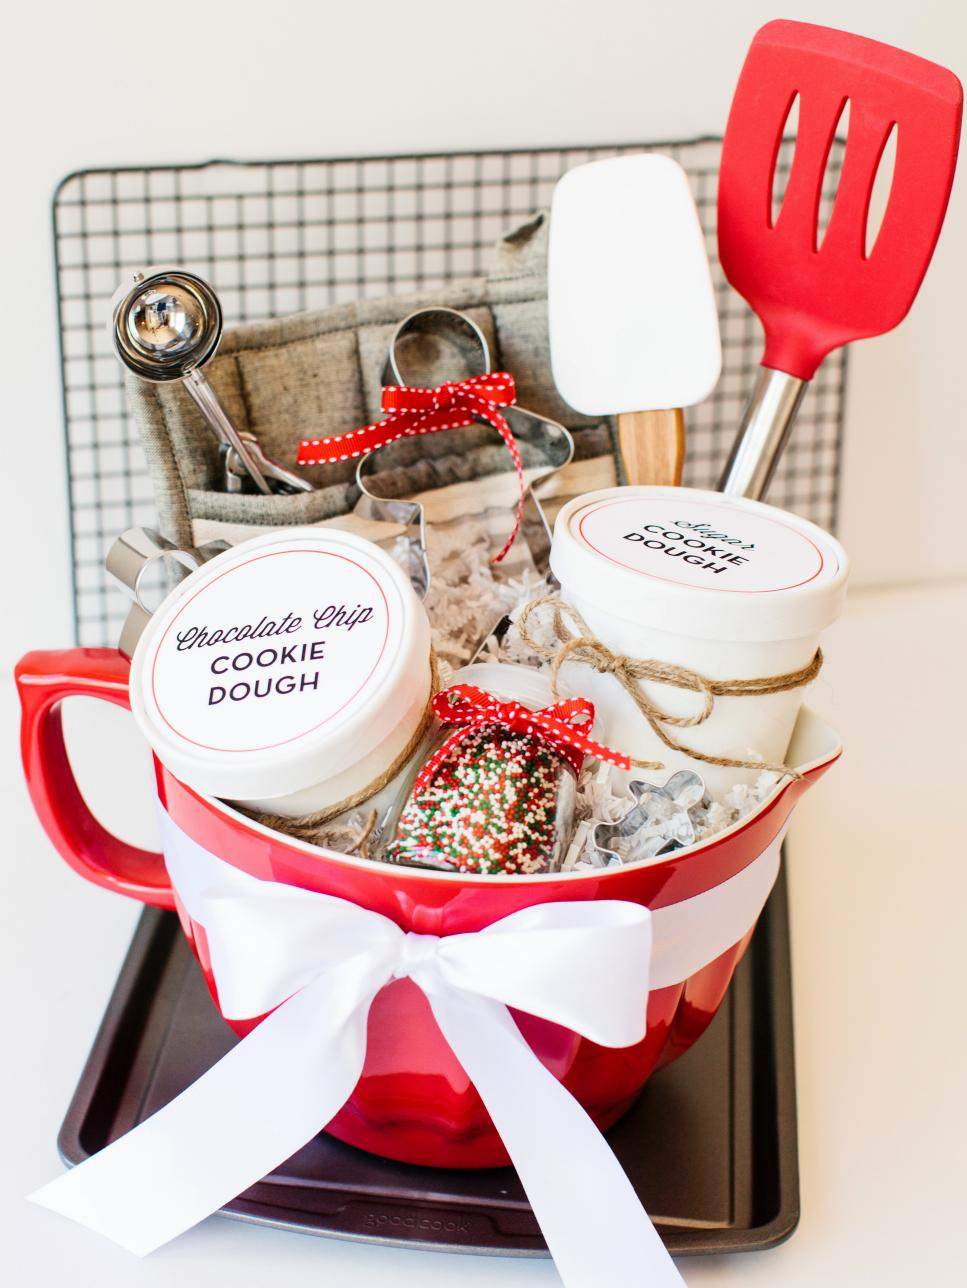 Culinary gift basket ideas diy Gifts for kitchen lovers